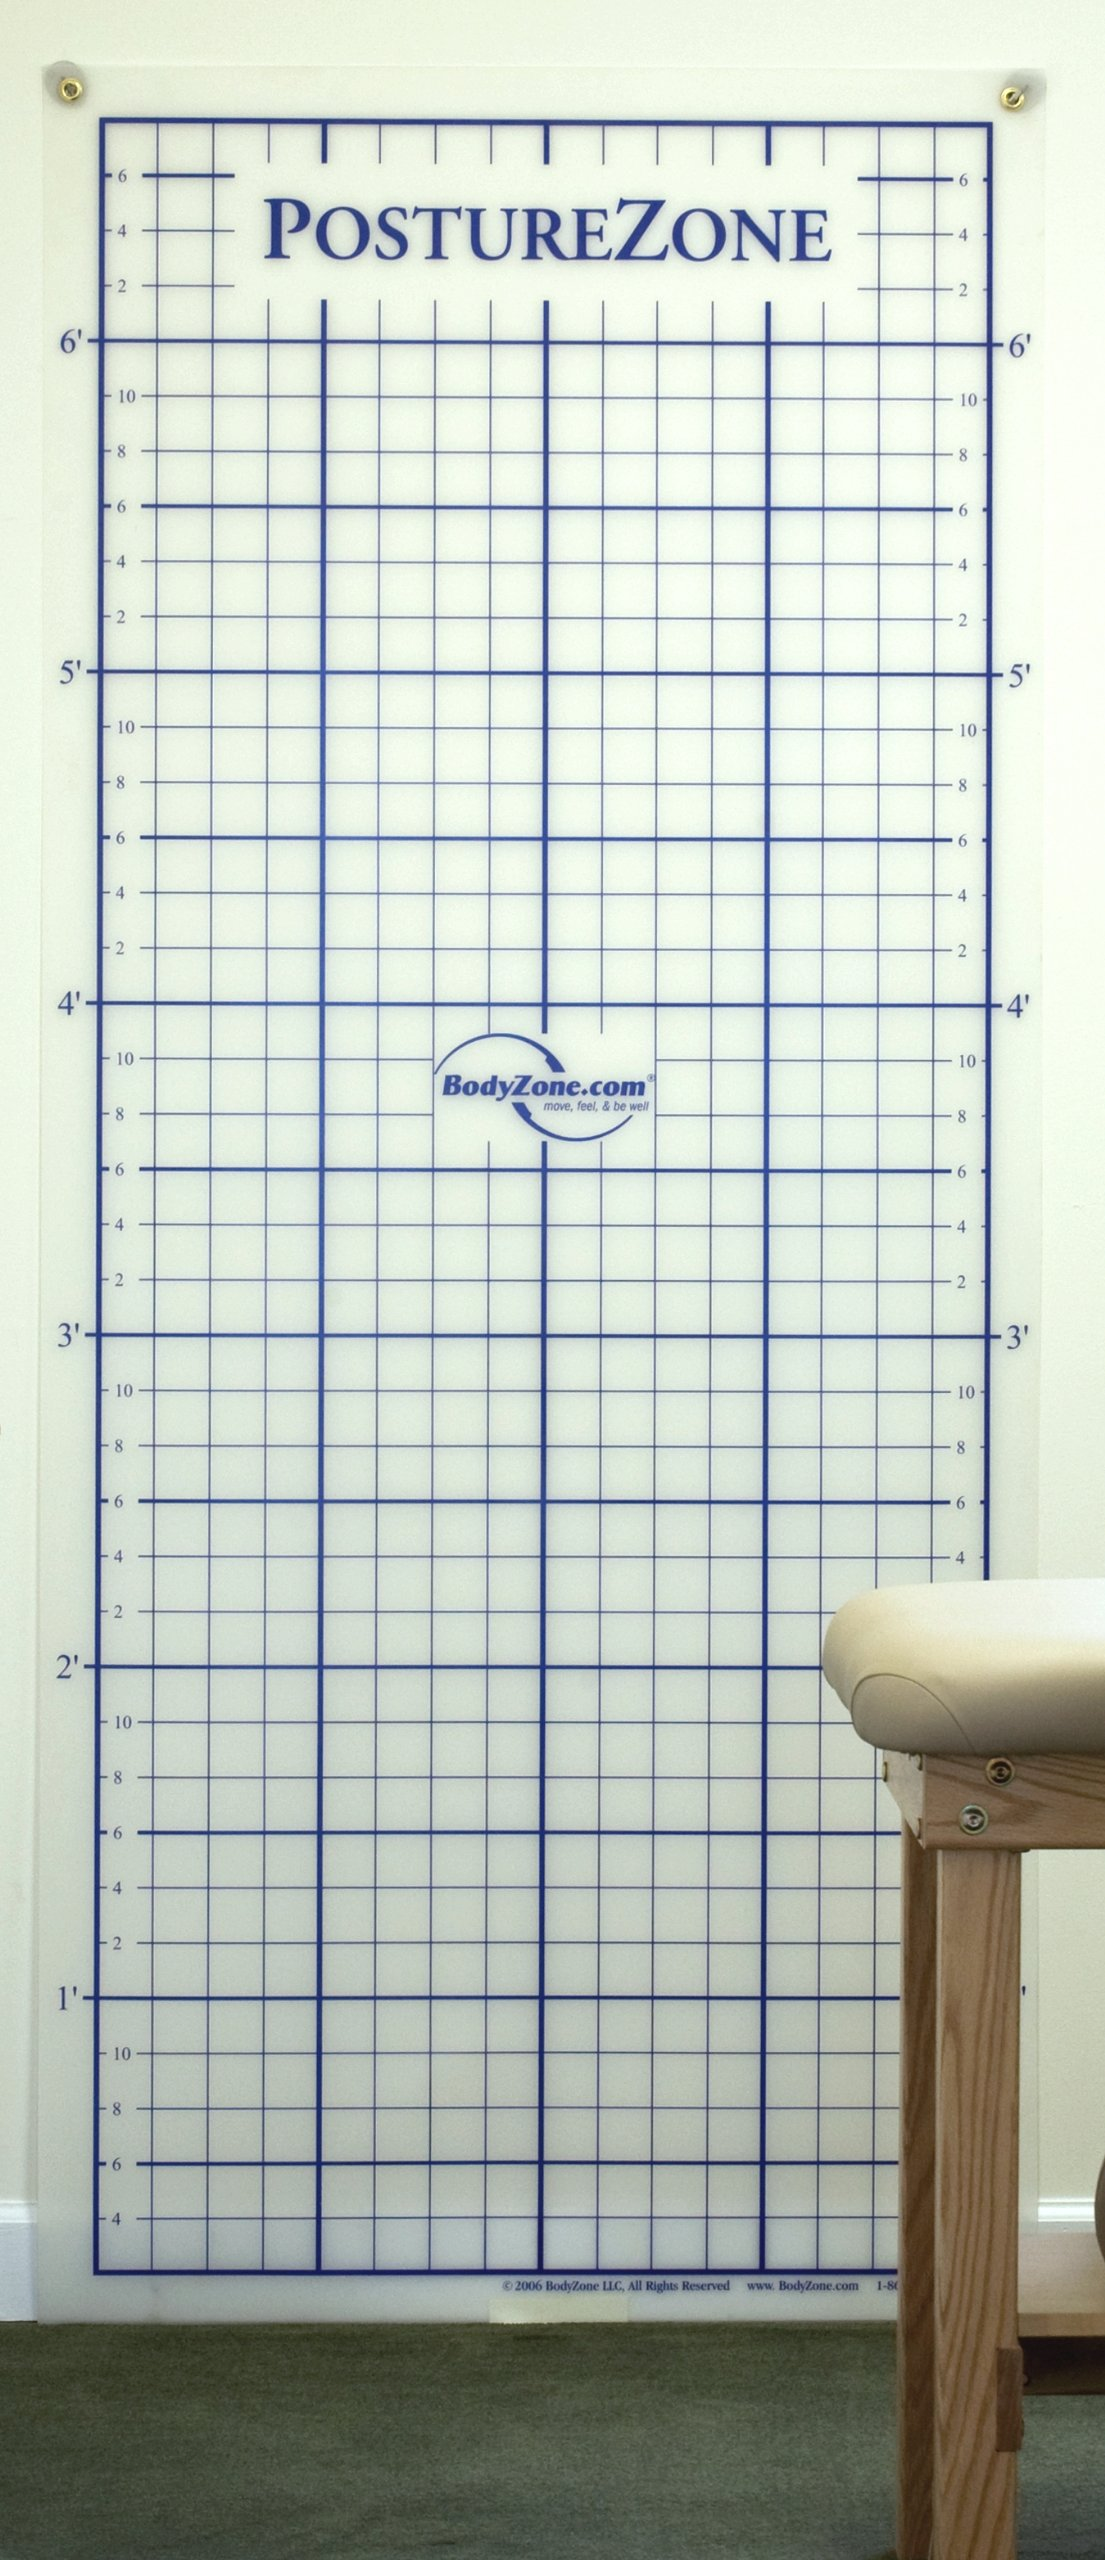 Posture Grid for Posture Assessment - Wall Mount